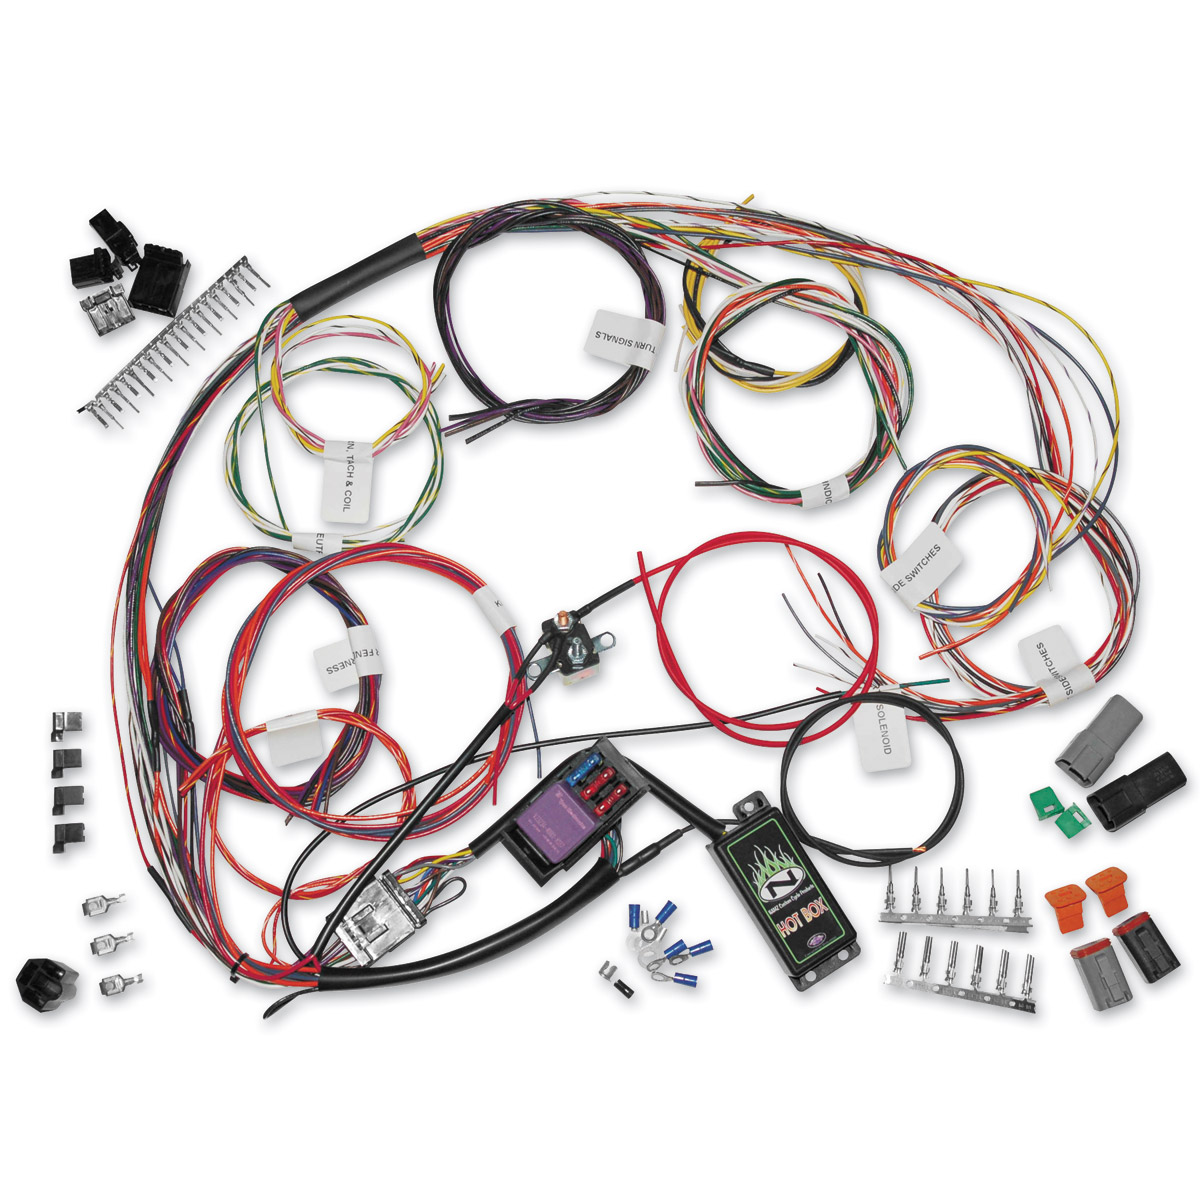 Complete Motorcycle Wiring Harness : Namz custom cycle complete bike wiring harness kit